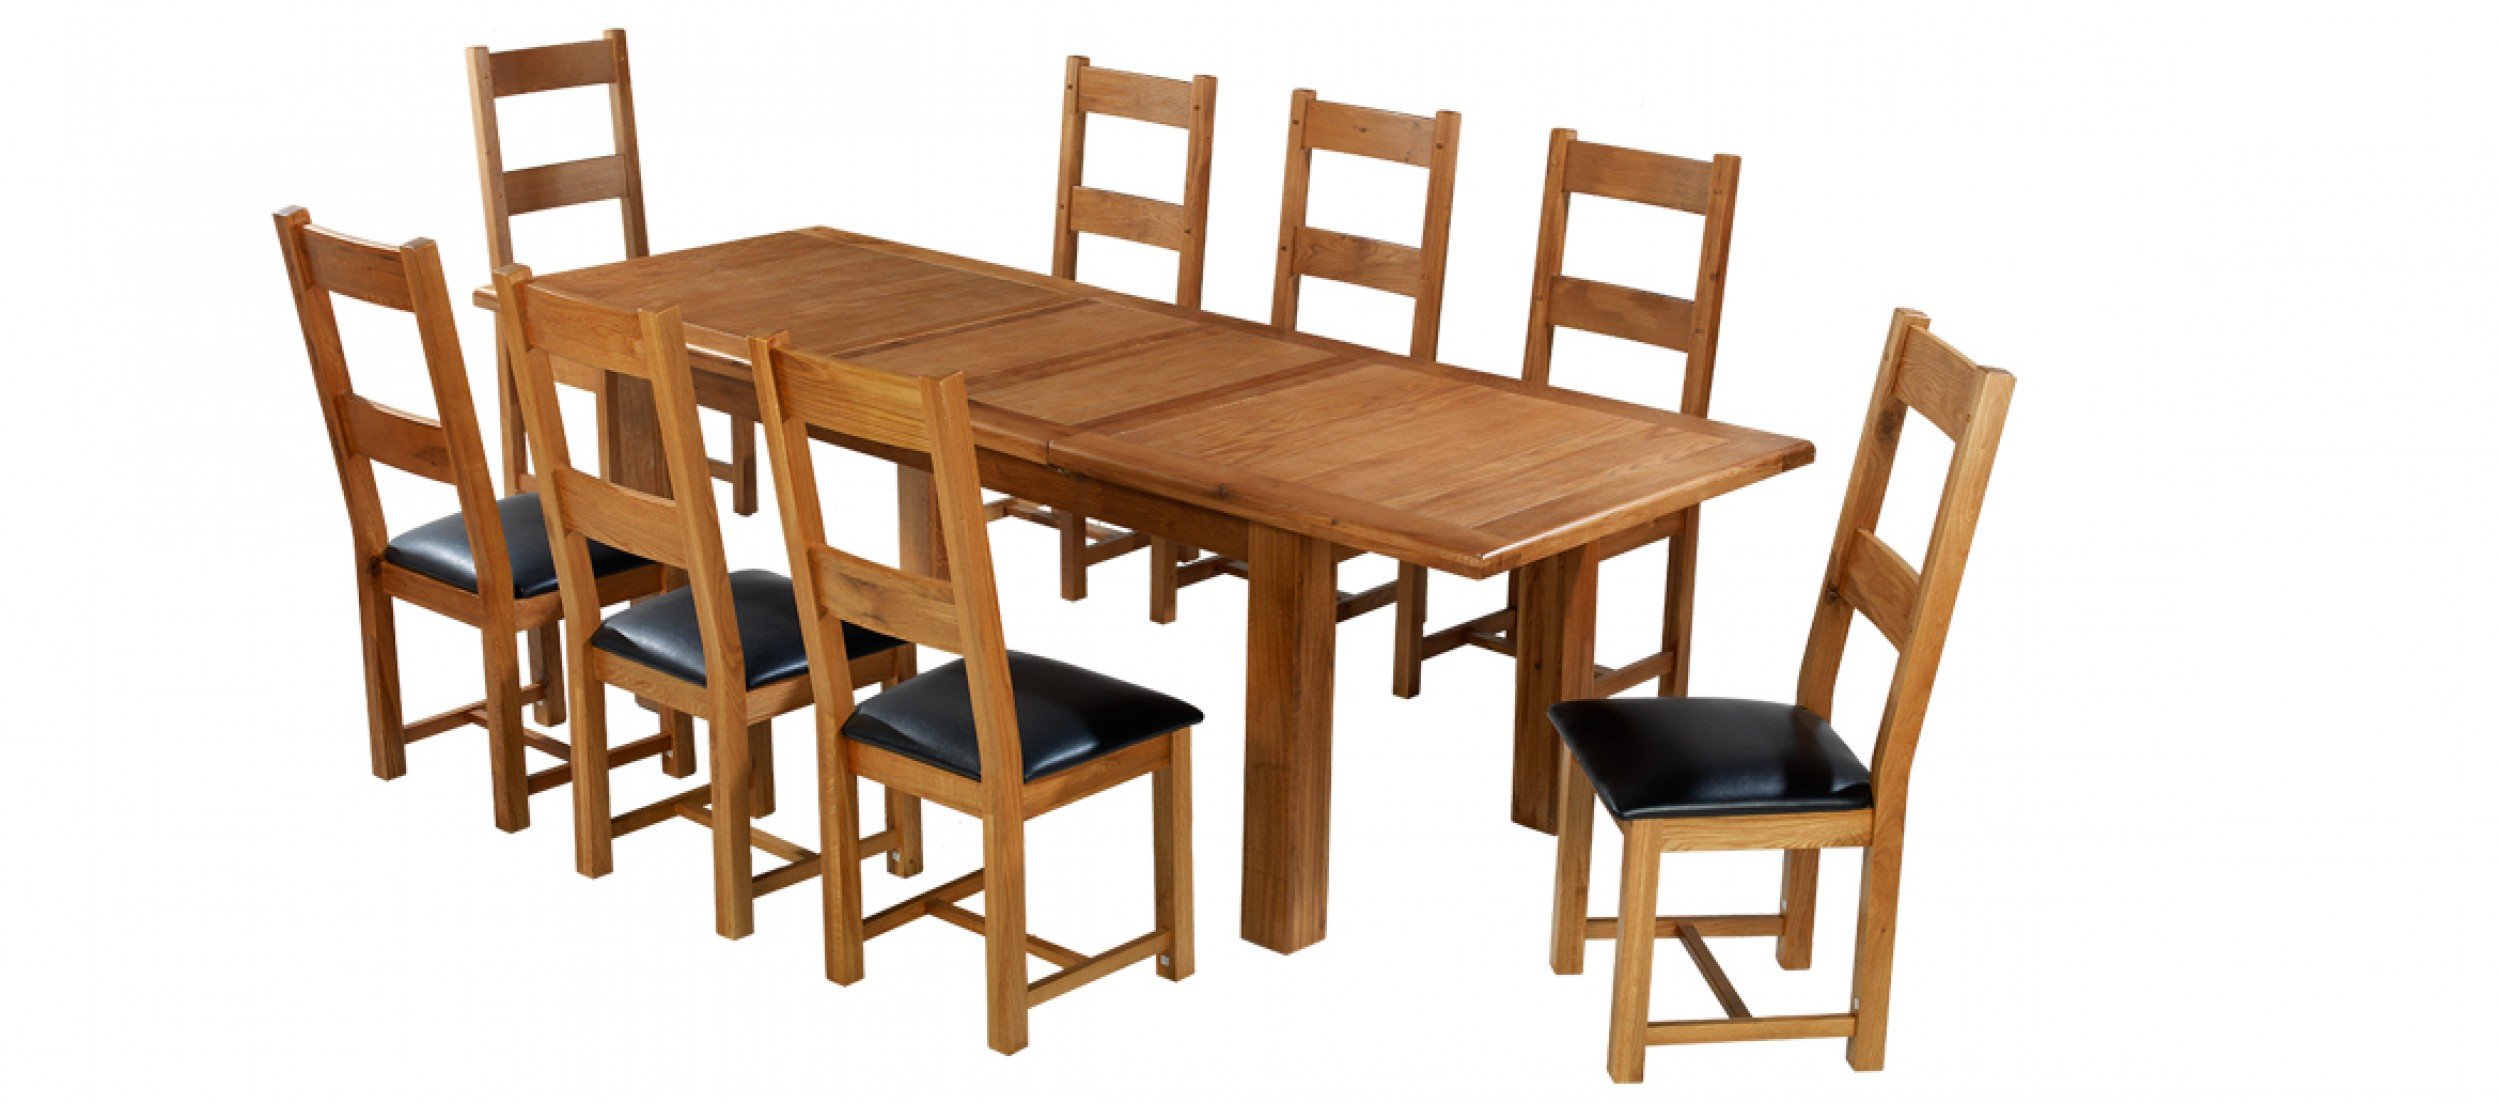 8 Chair Dining Set Barham Oak 180 250 Cm Extending Dining Table And 8 Chairs